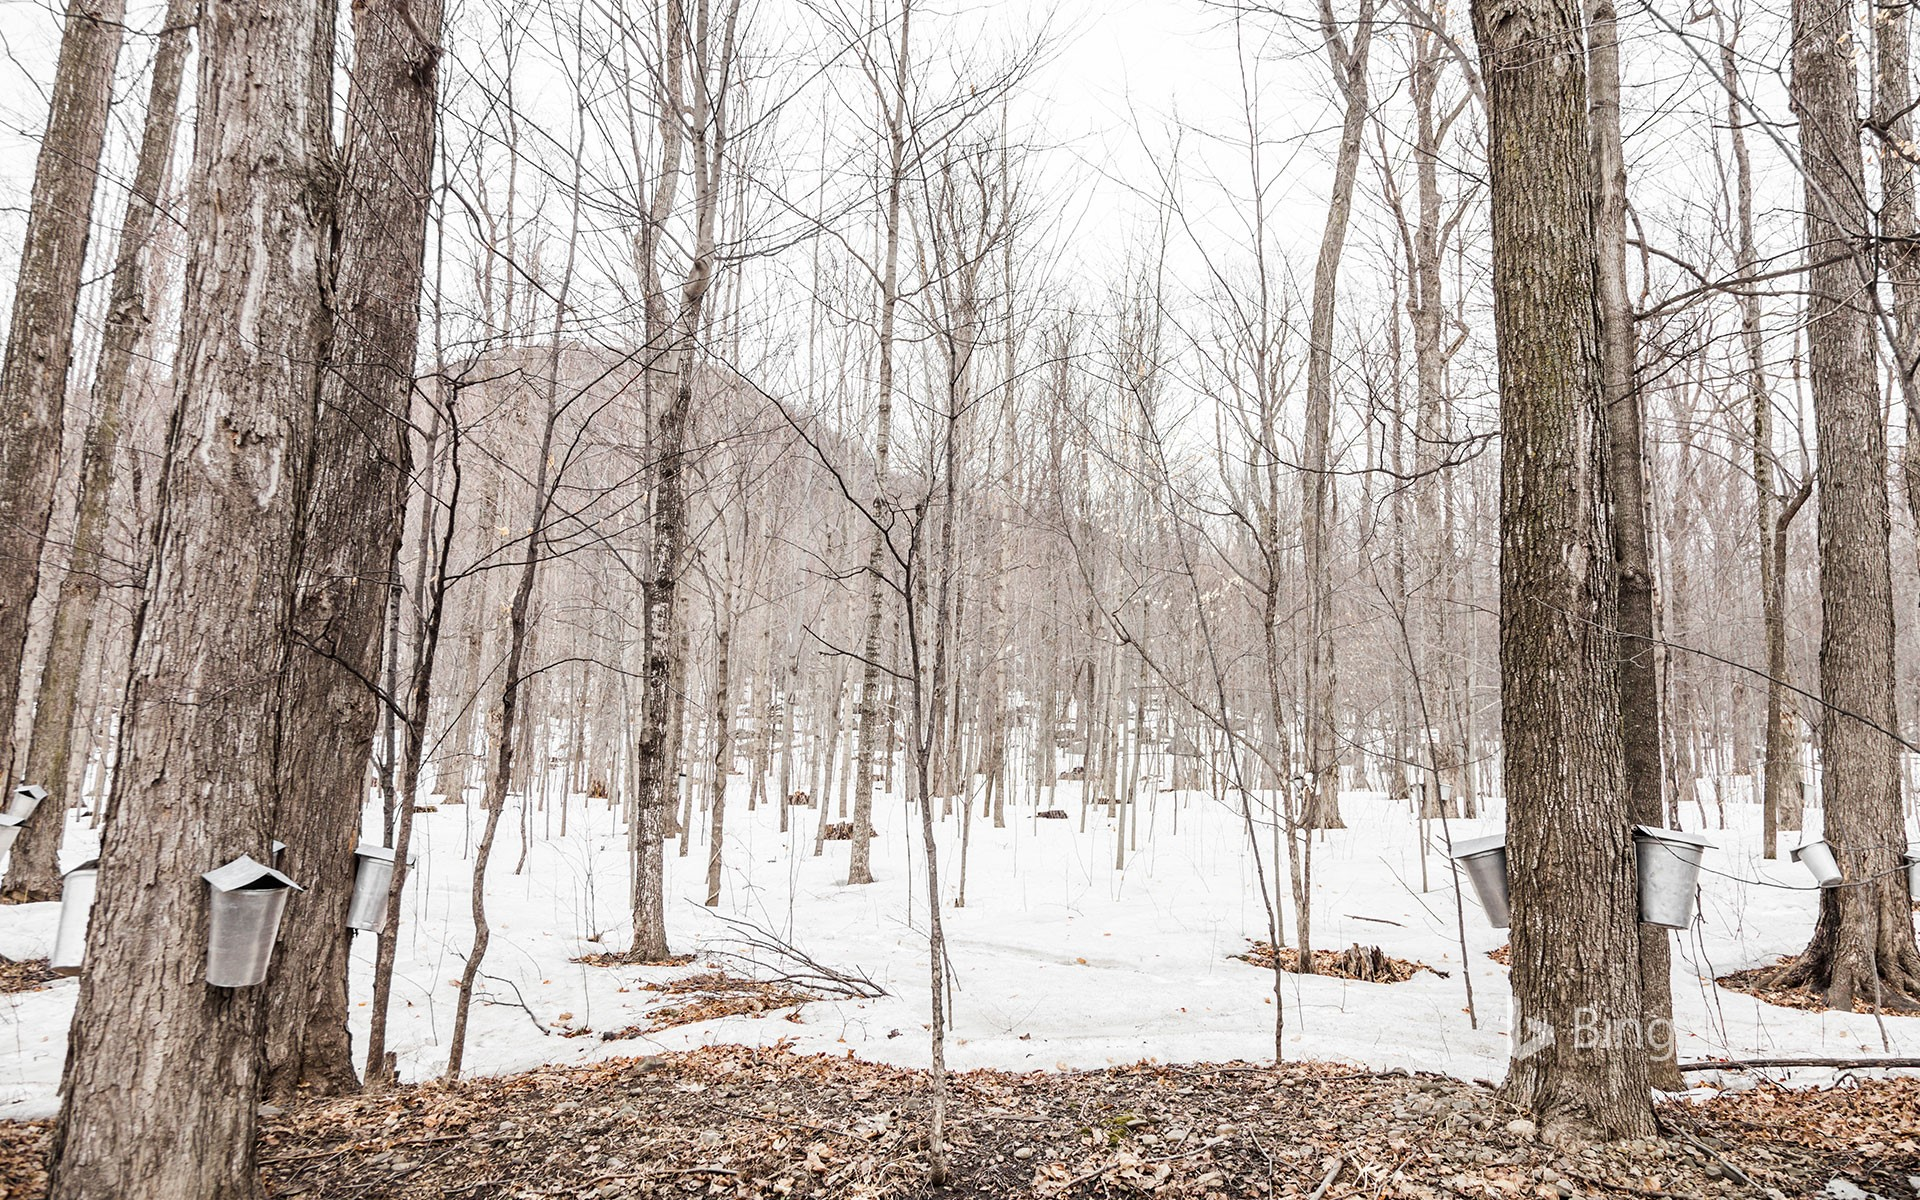 Sap buckets hanging on maple trees in a forest, Quebec